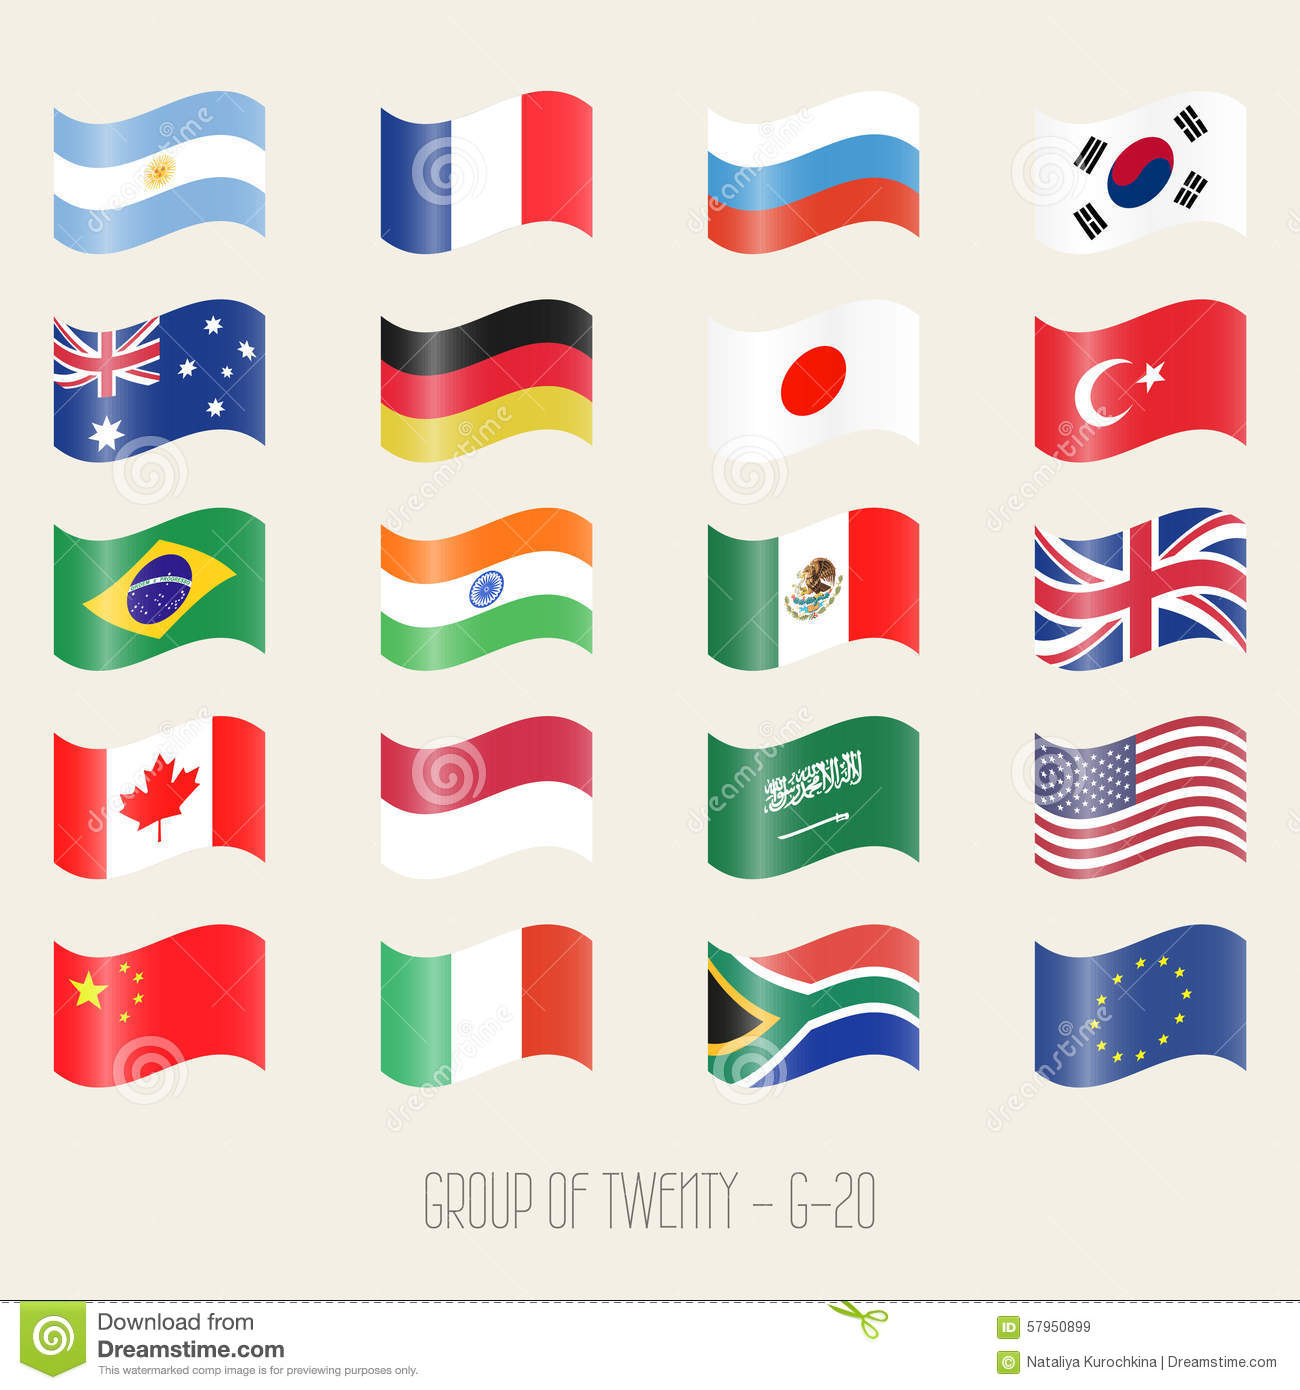 g20 map with Stock Photo Group Twenty G Flag Icon Set Russia Usa India Germany Other Country Flags Image57950899 on Animal World Map 175208 00 15 03 as well Queensland Bicycle Route Maps additionally Colors furthermore Detail 2018 Bmw 4 series 440i xdrive New 16345193 also Watch.